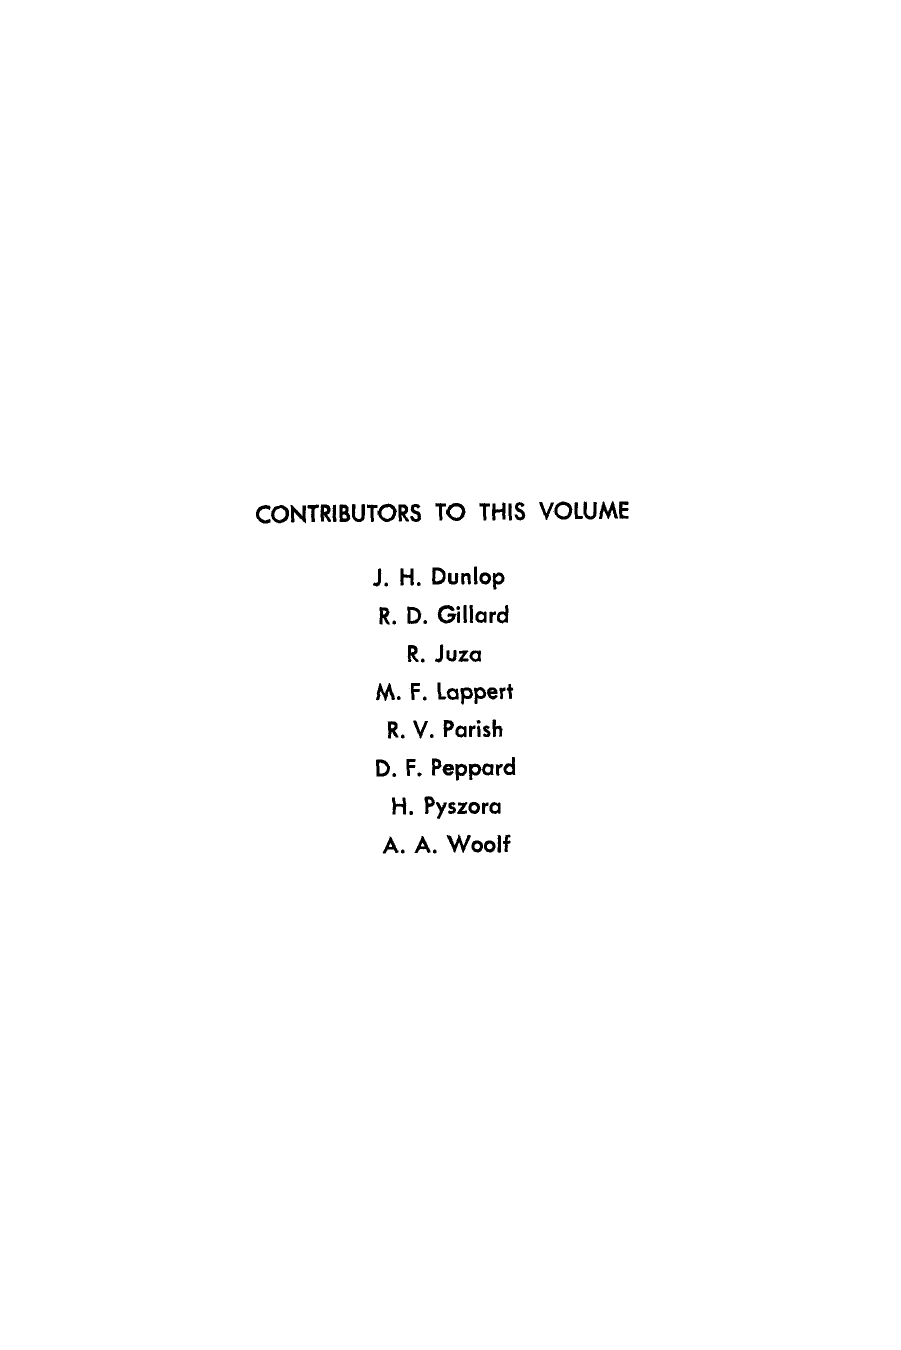 CONTRIBUTORS TO THIS VOLUME A  A  Woolf